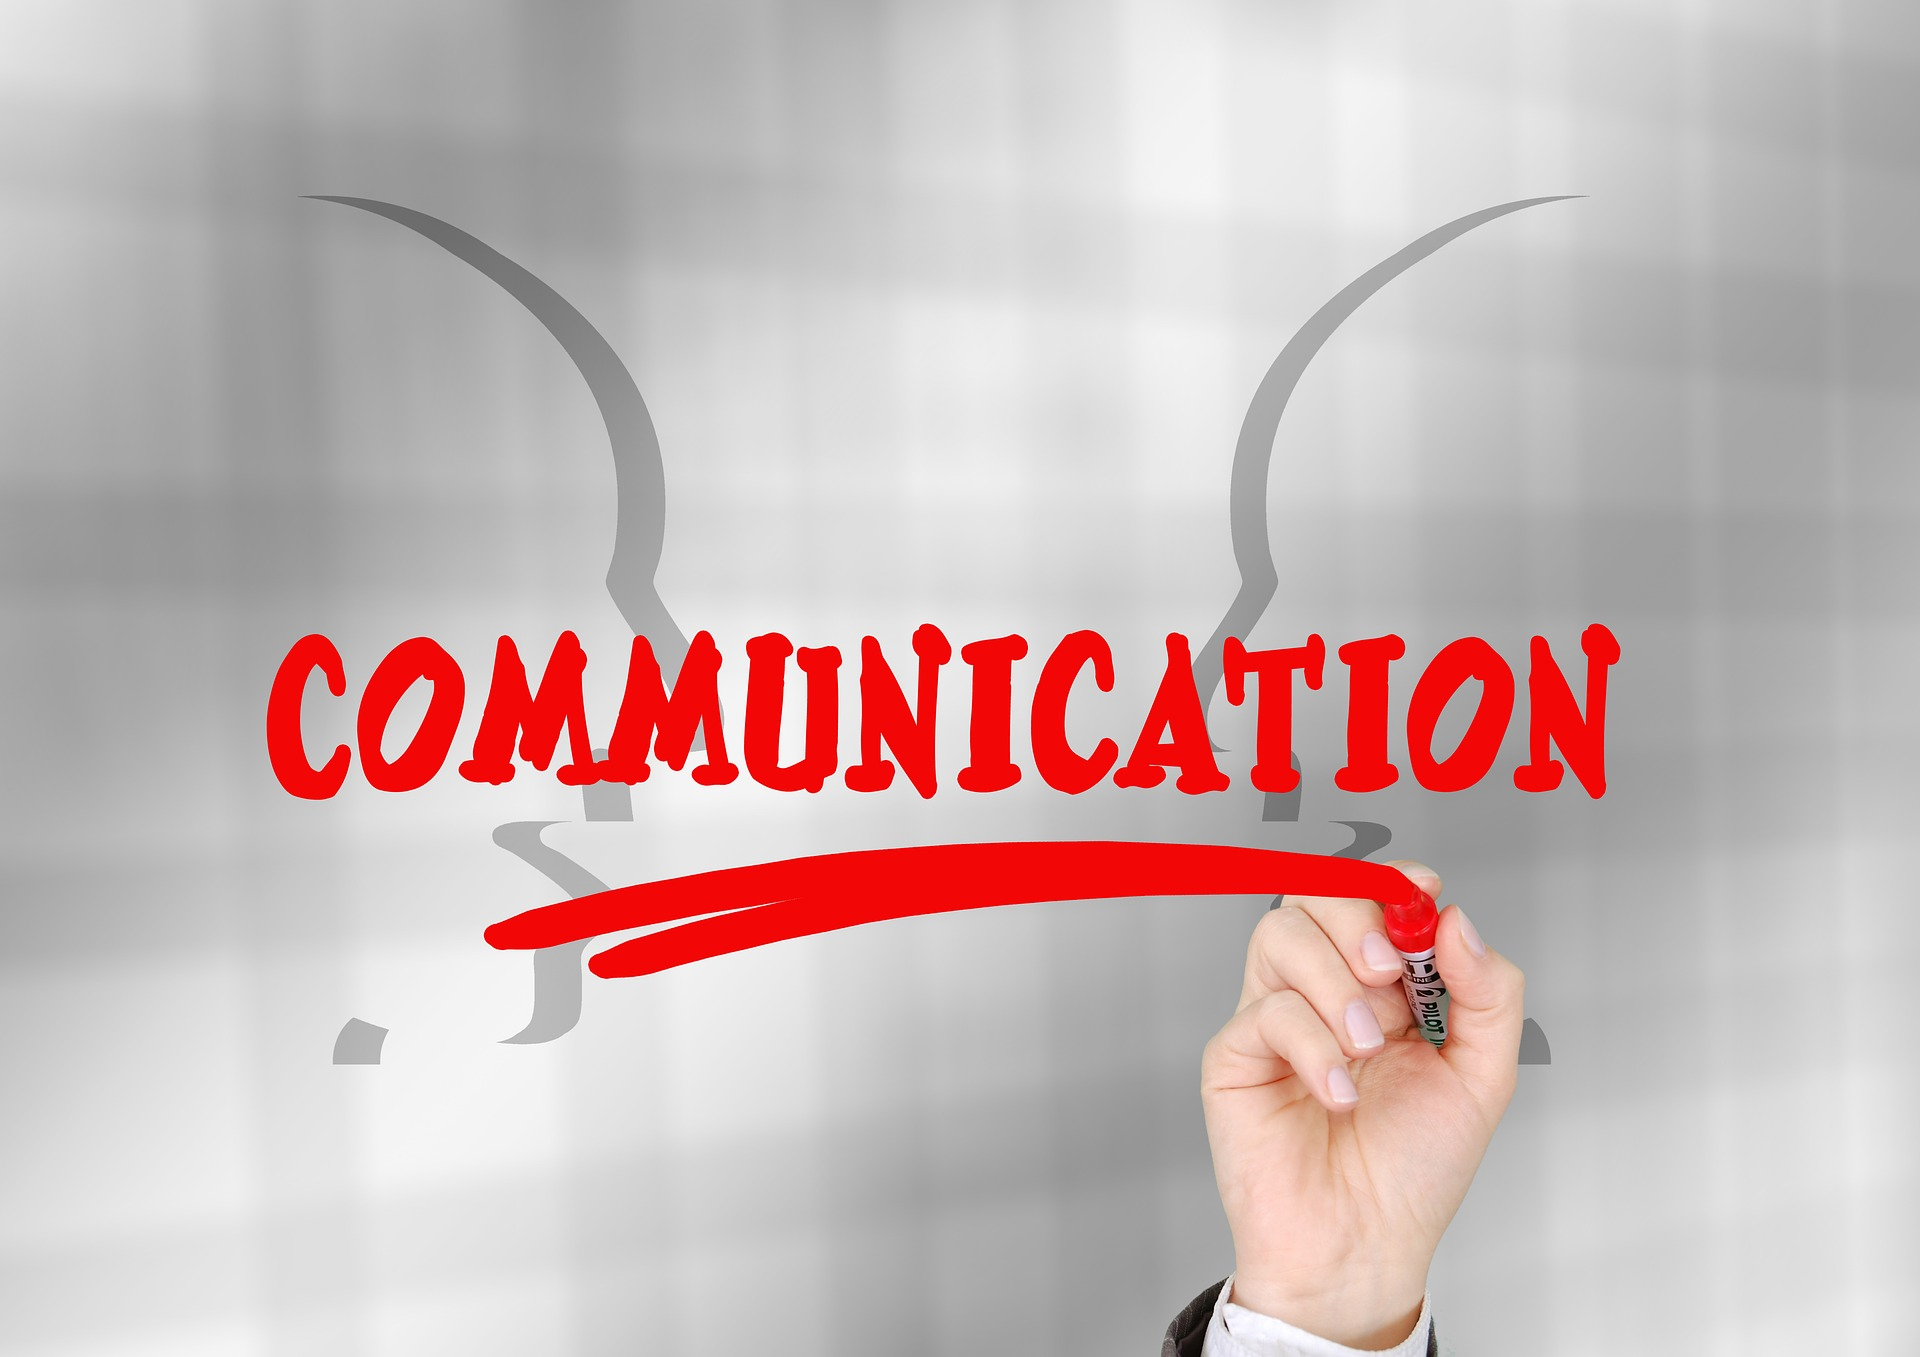 Communication- 10 Ways To Make an Impression through Your Communication